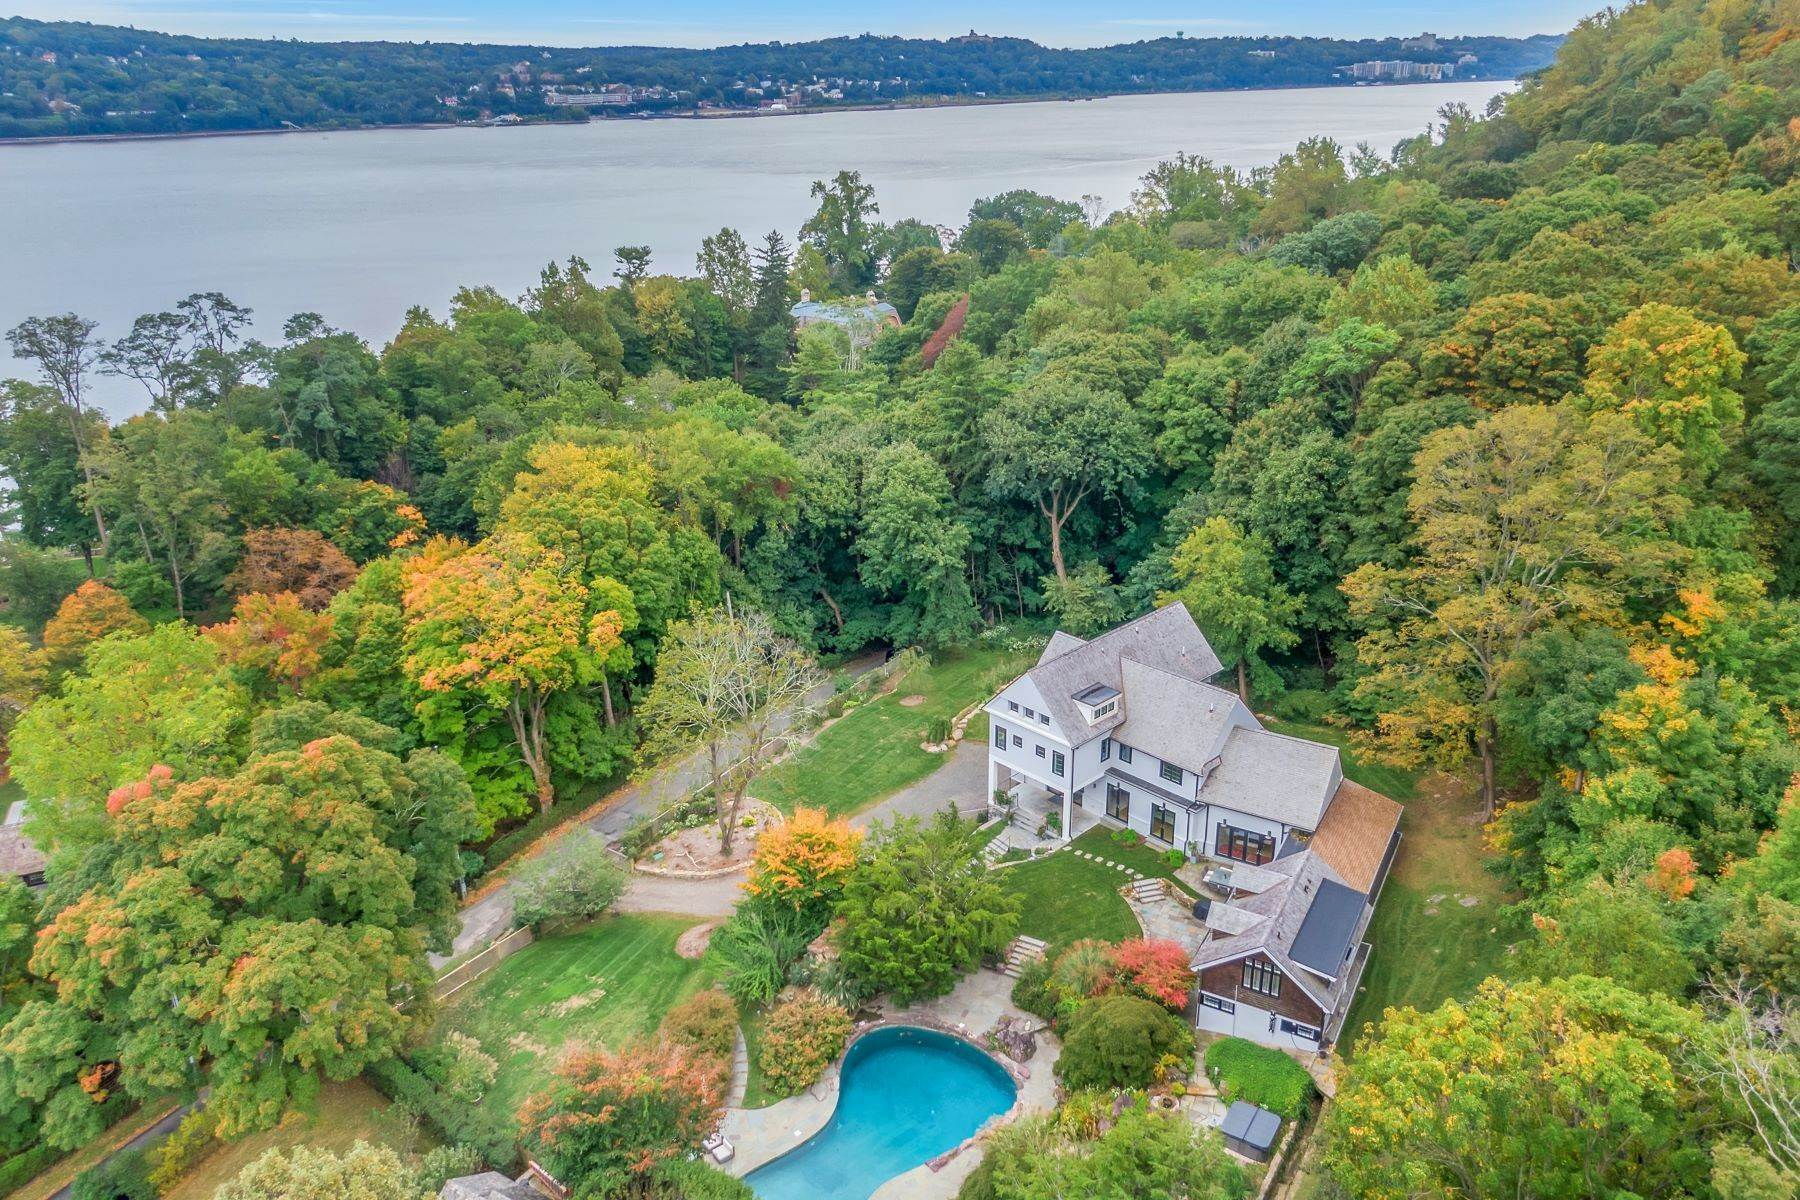 Single Family Homes for Sale at 'Gilman Carriage House' 11 Lawrence Lane Palisades, New York 10964 United States